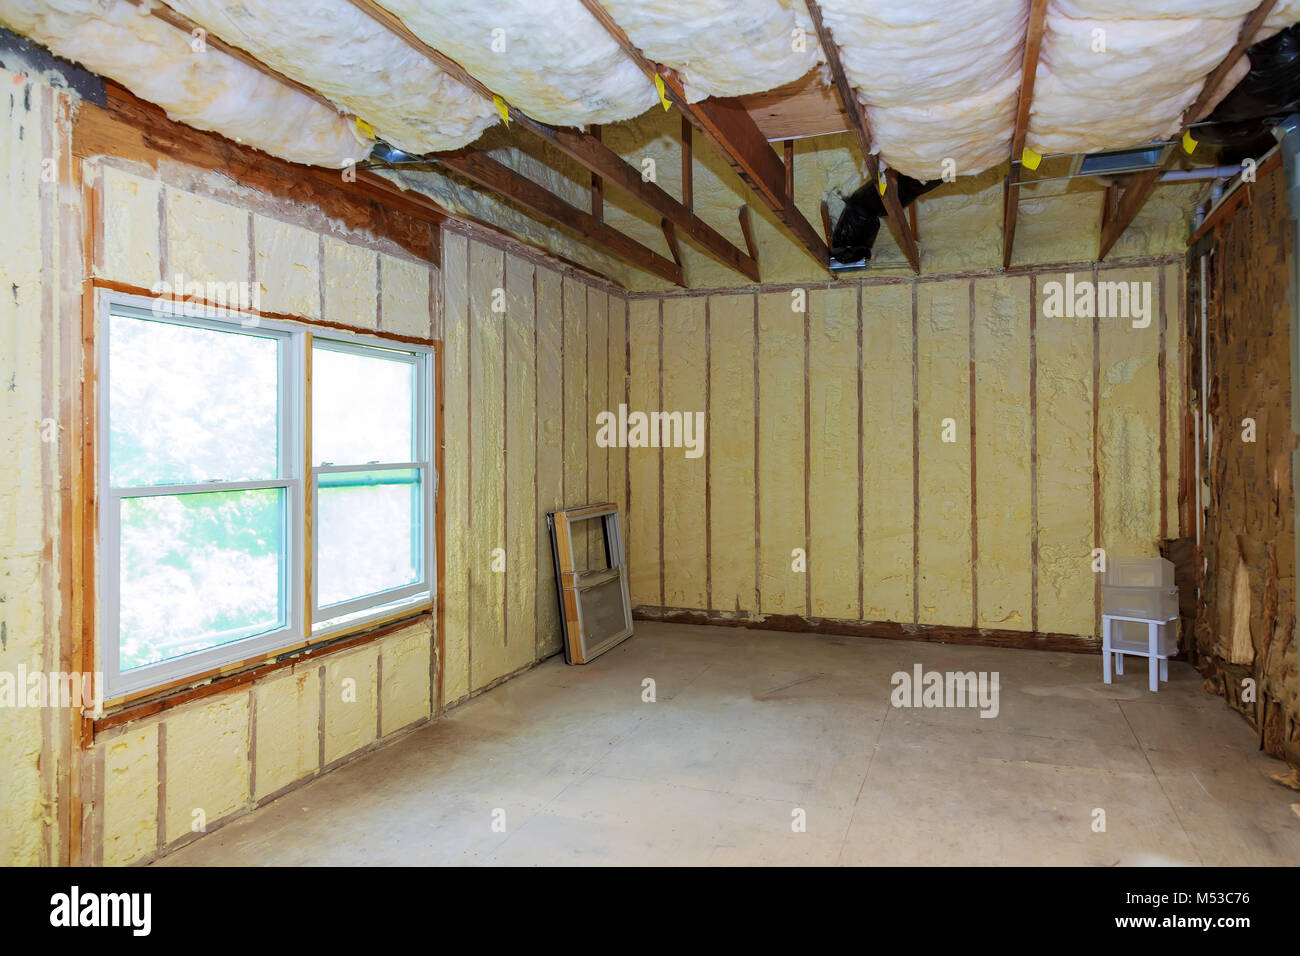 Container Haus Isolieren Thermo Isolation Stockfotos Thermo Isolation Bilder Alamy